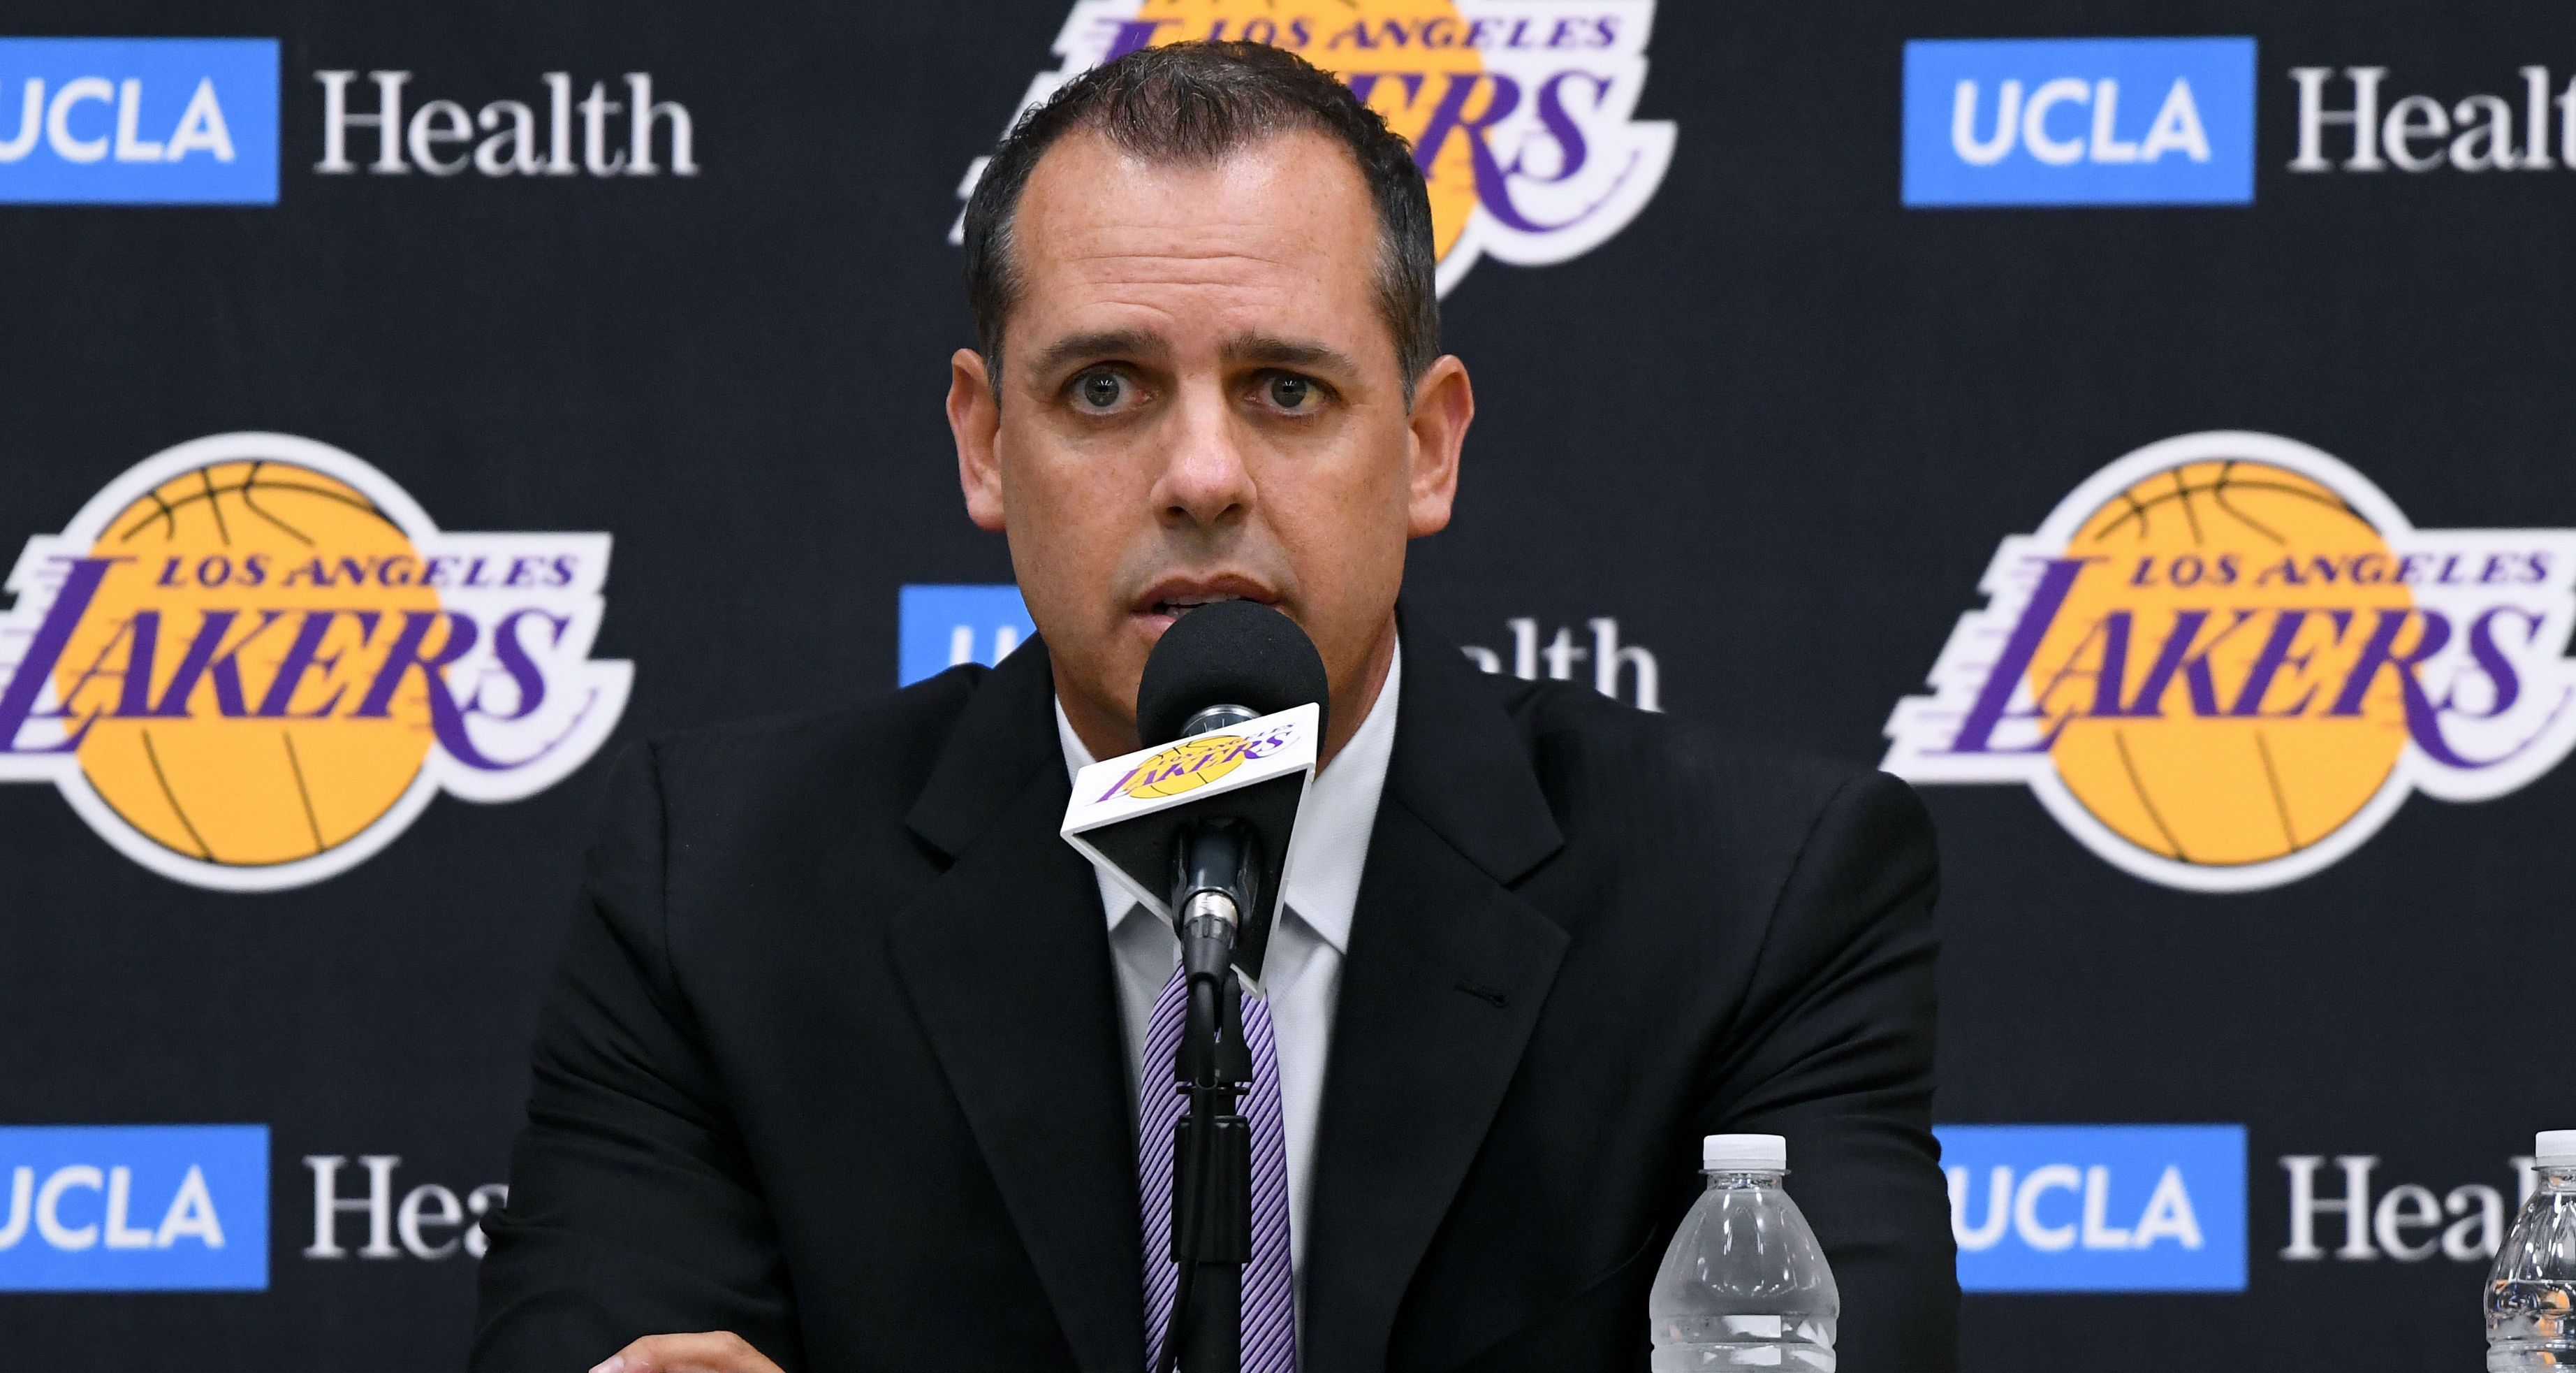 As Frank Vogel prepares for his first season in charge of the Los Angeles Lakers, he discussed LeBron James and Anthony Davis.